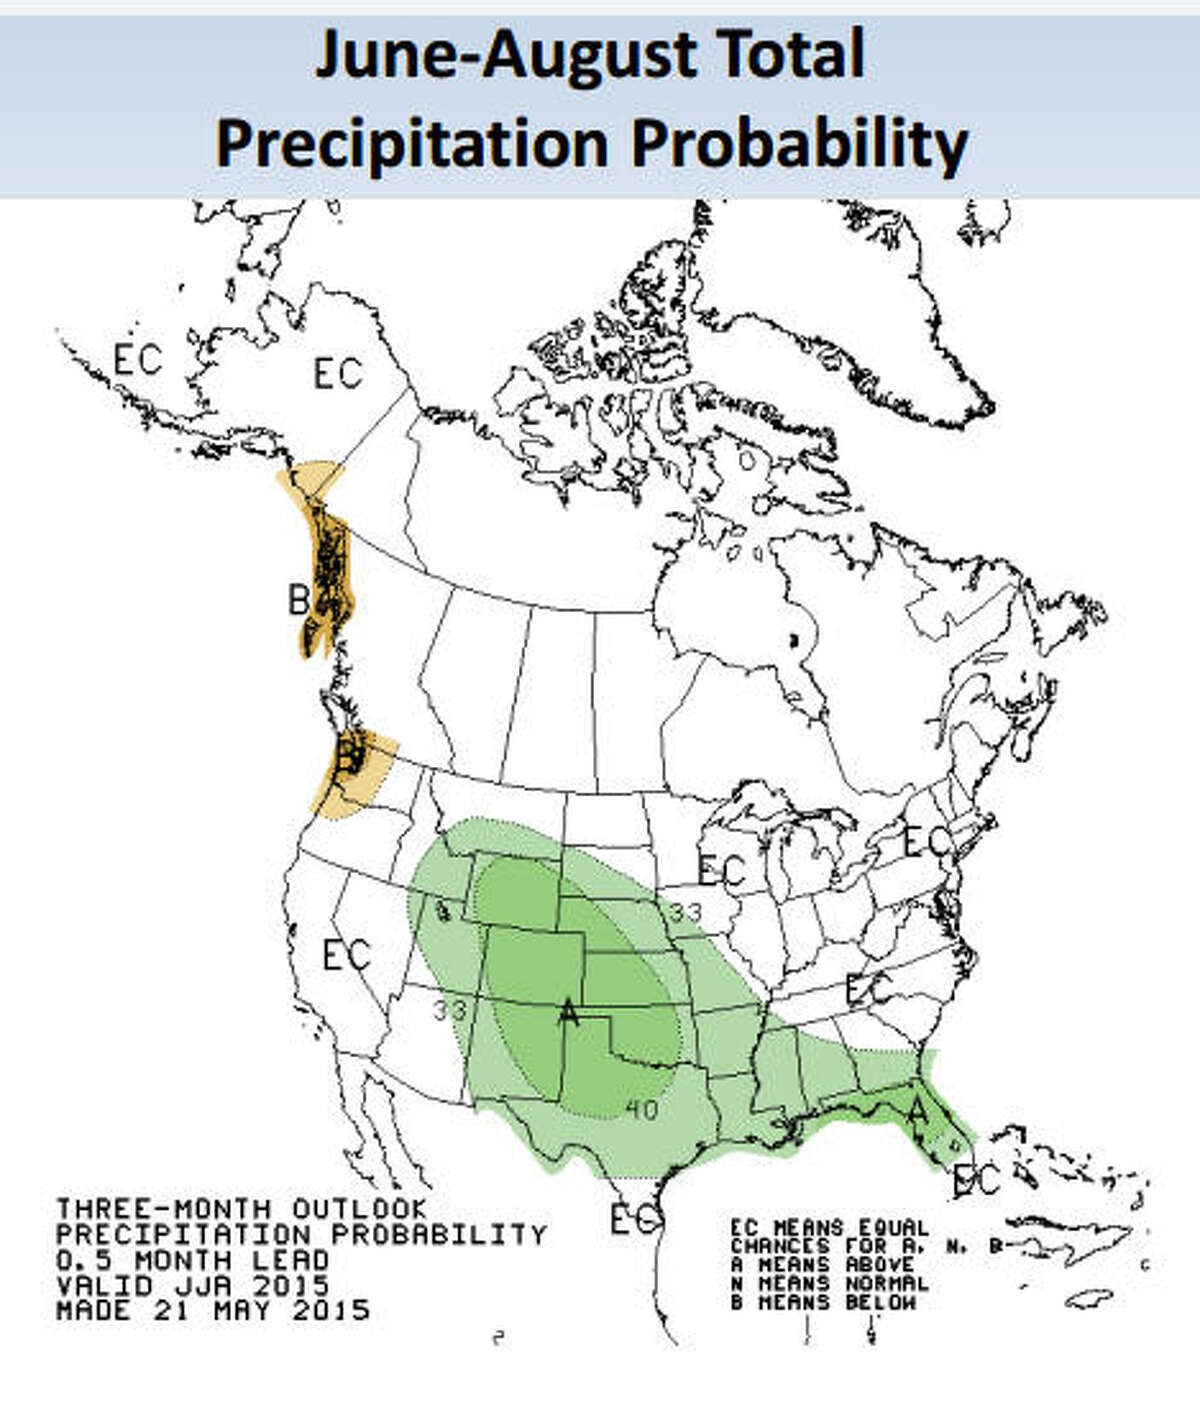 The green area indicates higher-than-average rainfall. Image credit: NOAA